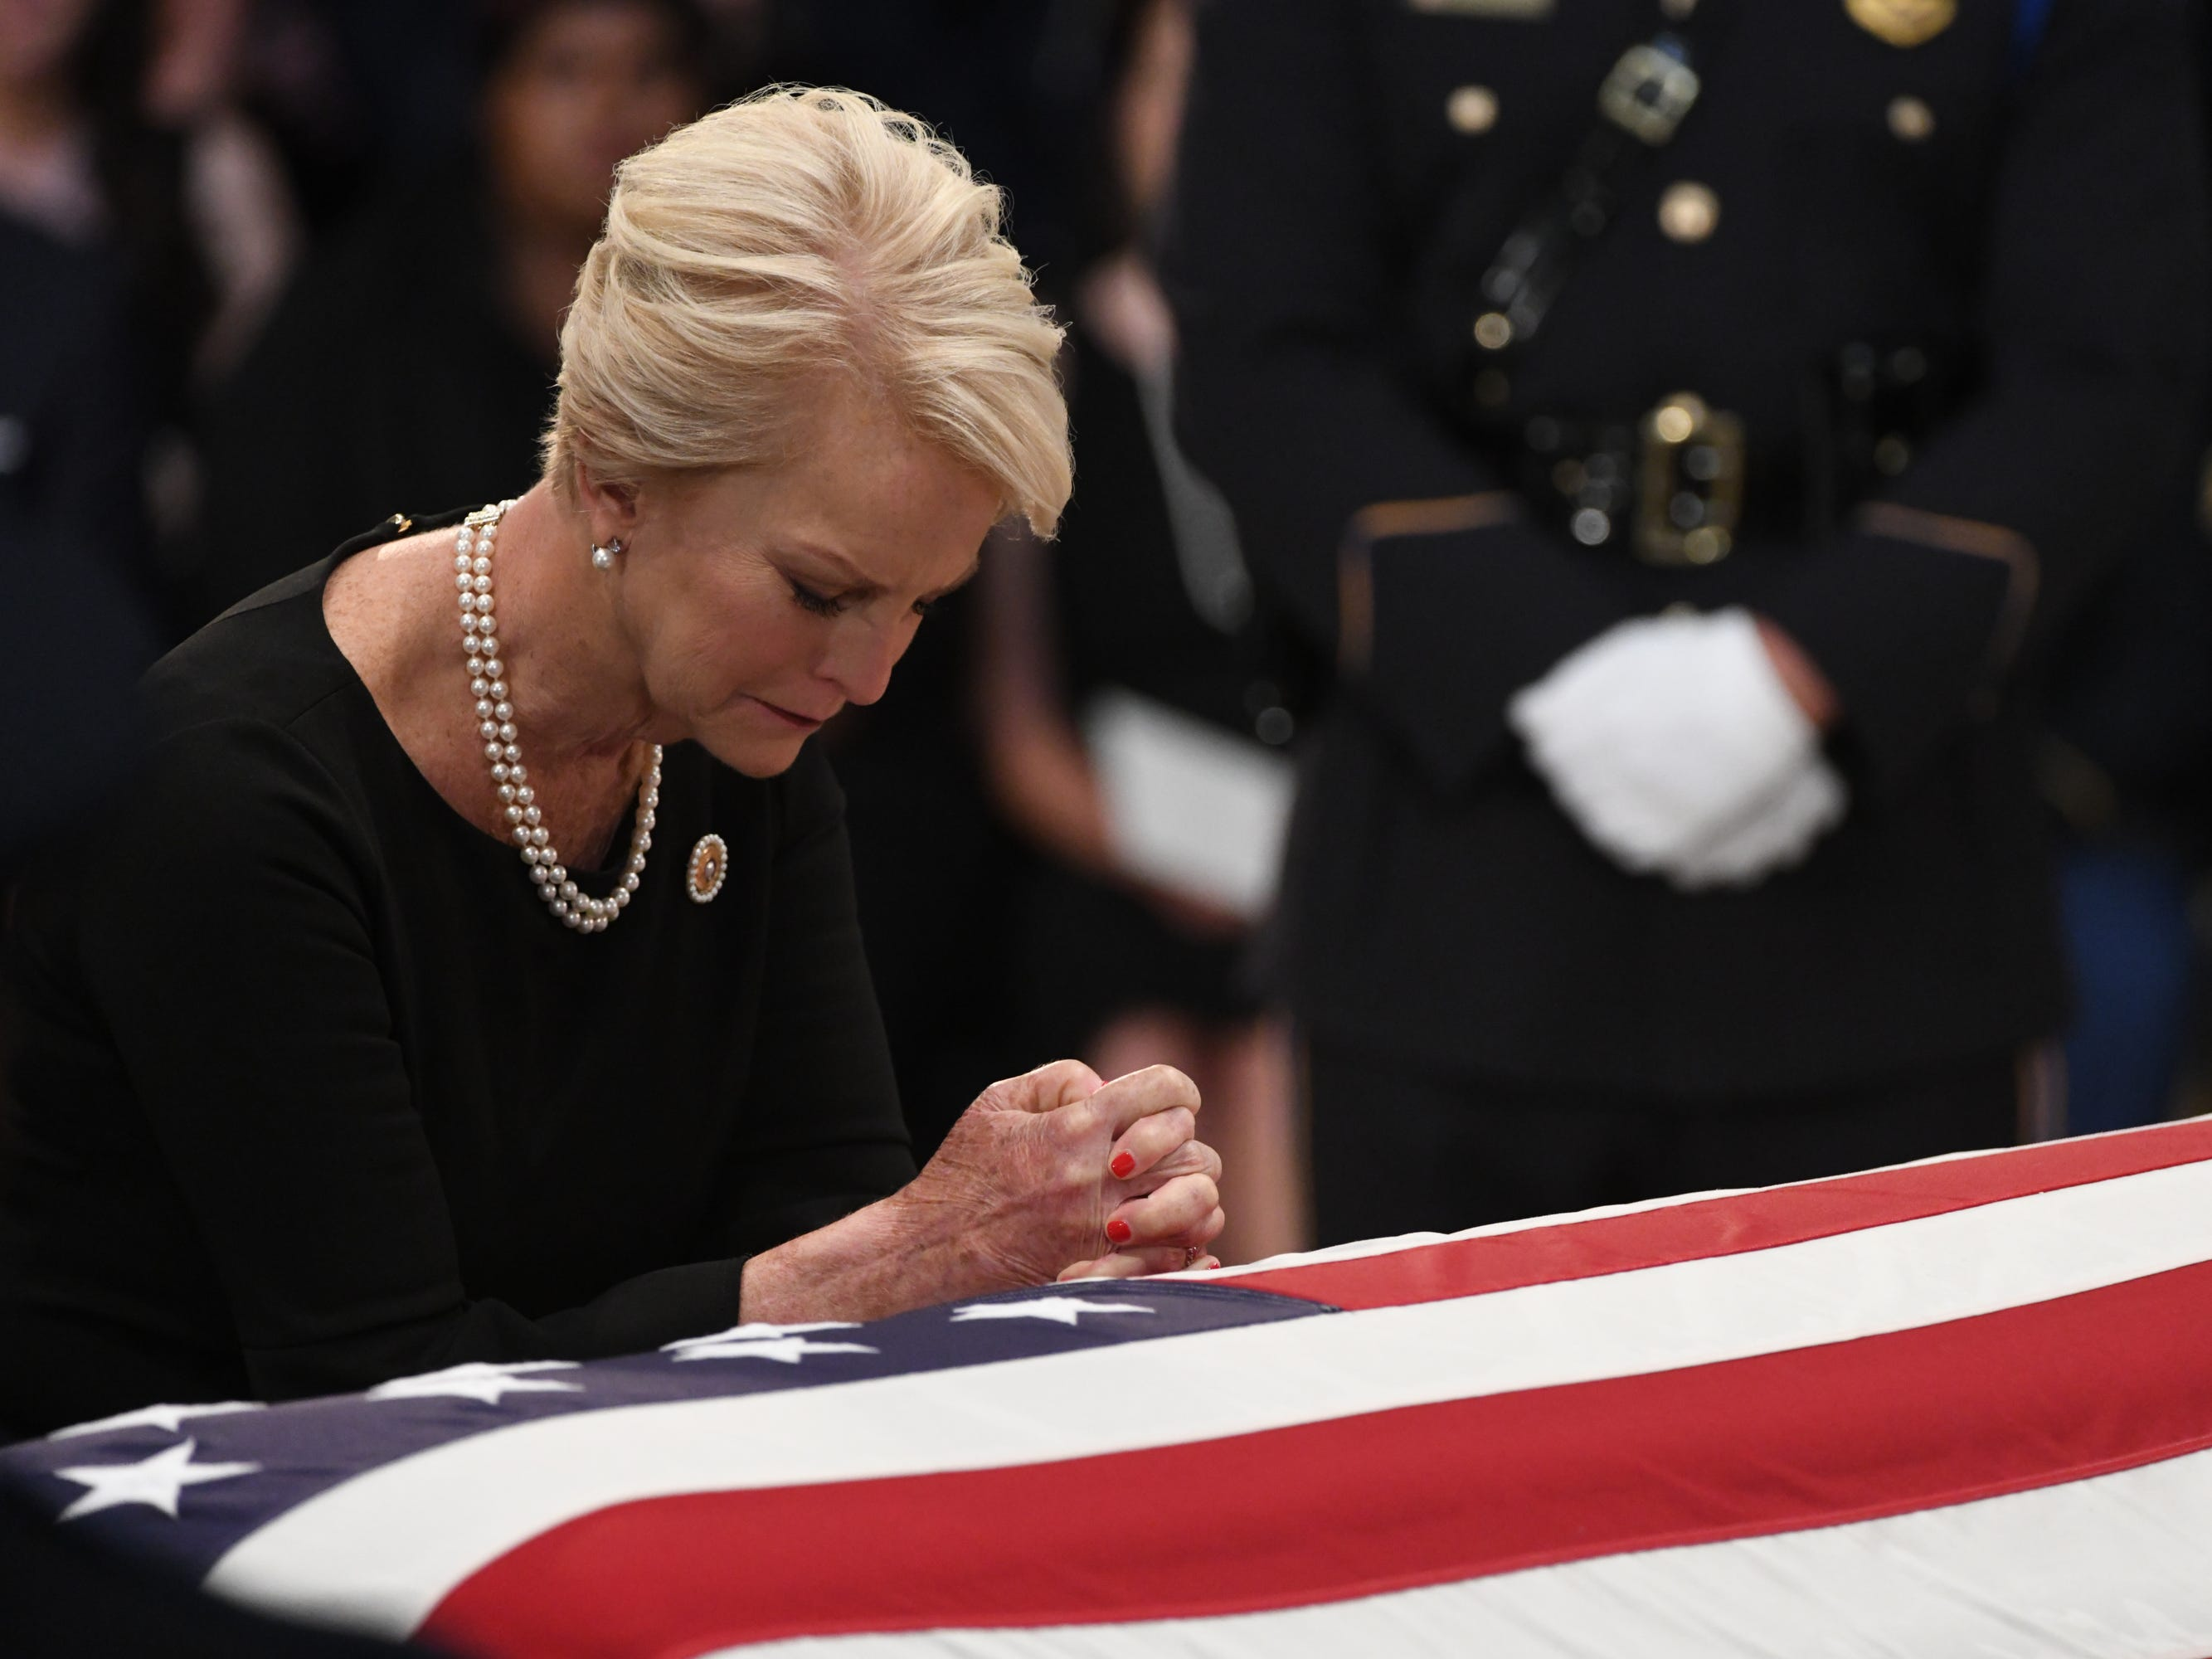 8/31/18 11:24:15 AM -- Washington, DC, U.S.A  -- Cindy McCain pays her respects as the body of her husband, John McCain, lies in state at the U.S. Capitol in Washington on Aug. 31, 2018 in Washington. Sen. McCain died on Aug. 25. --    Photo by  Staff ORG XMIT:  JC 137436 McCain U.S. Capi 8/31/2018 (Via OlyDrop)